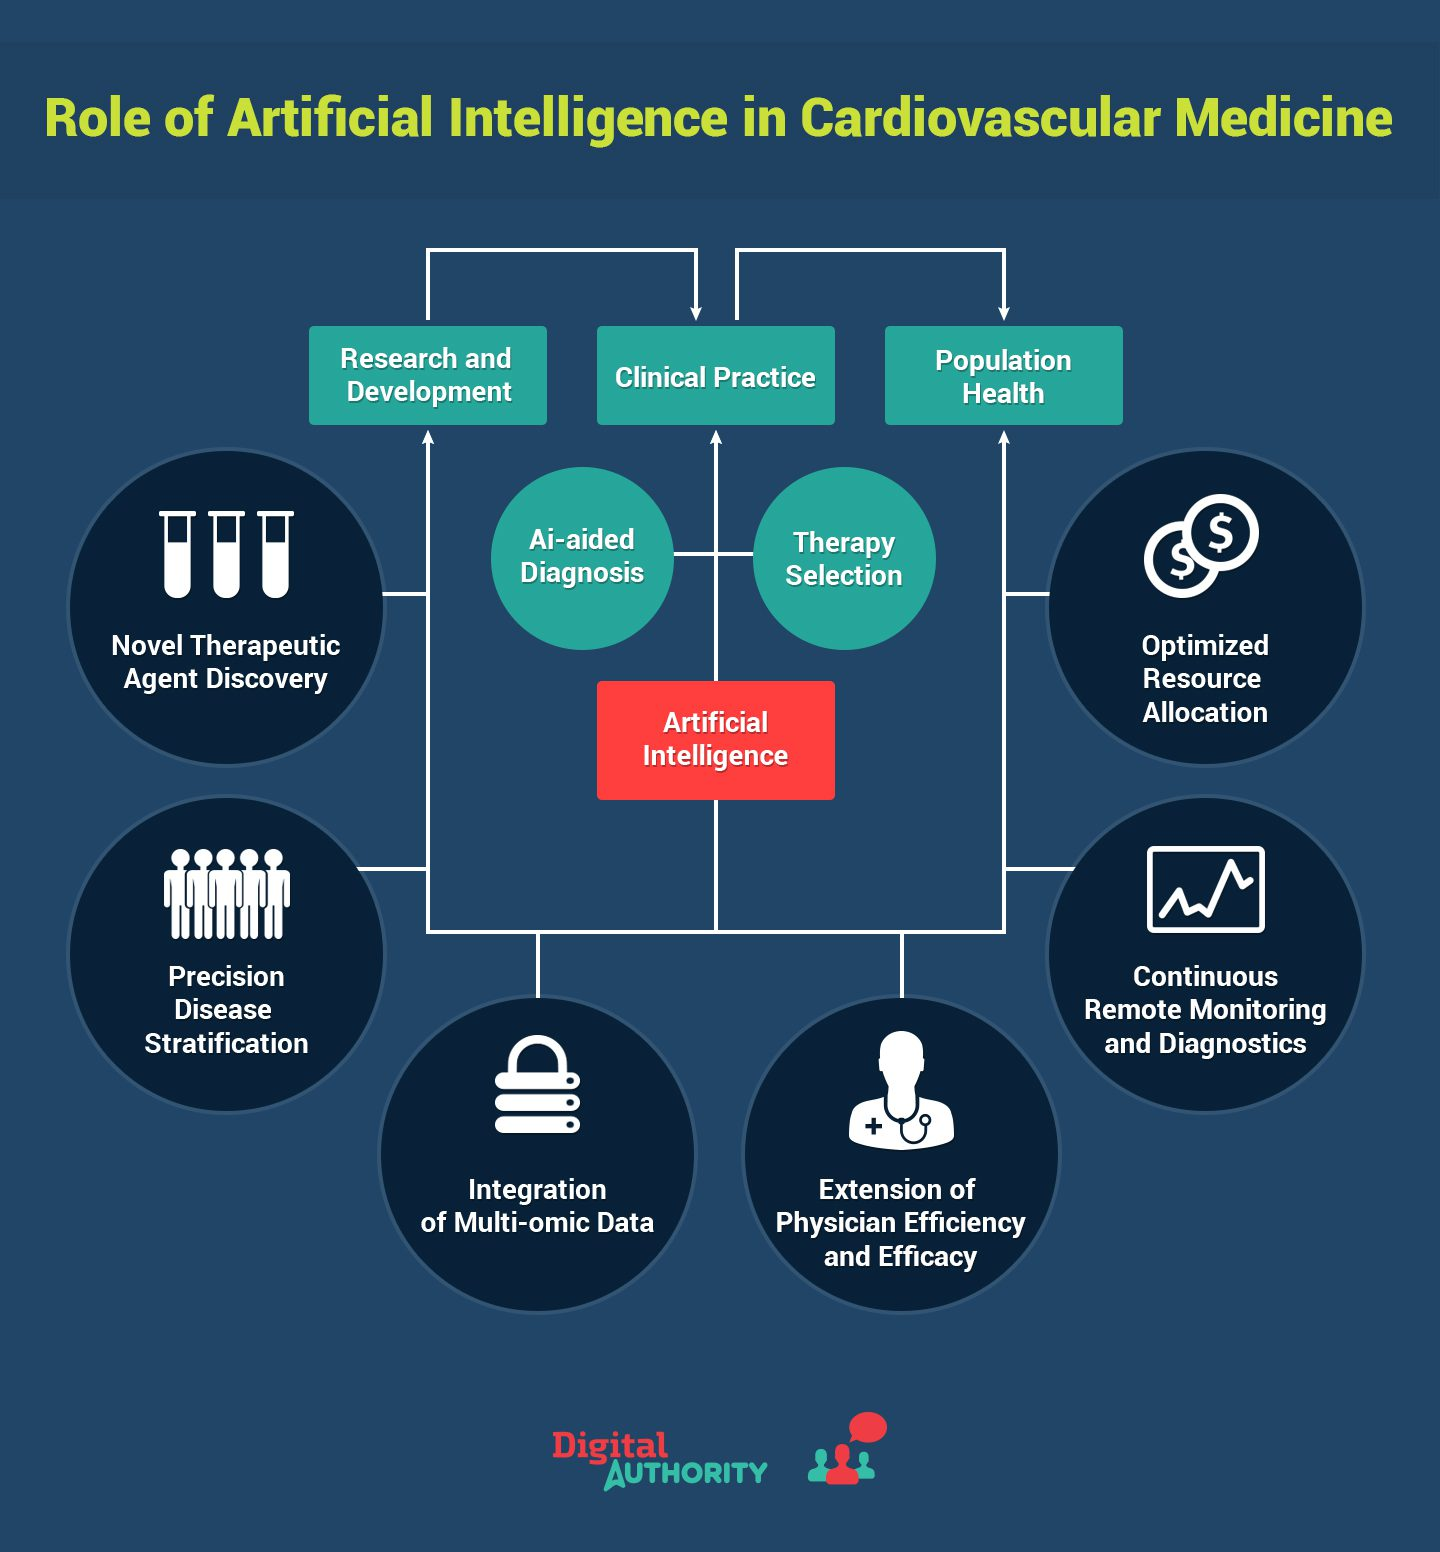 Graphic showcasing the role of artificial intelligence in cardiovascular medicine